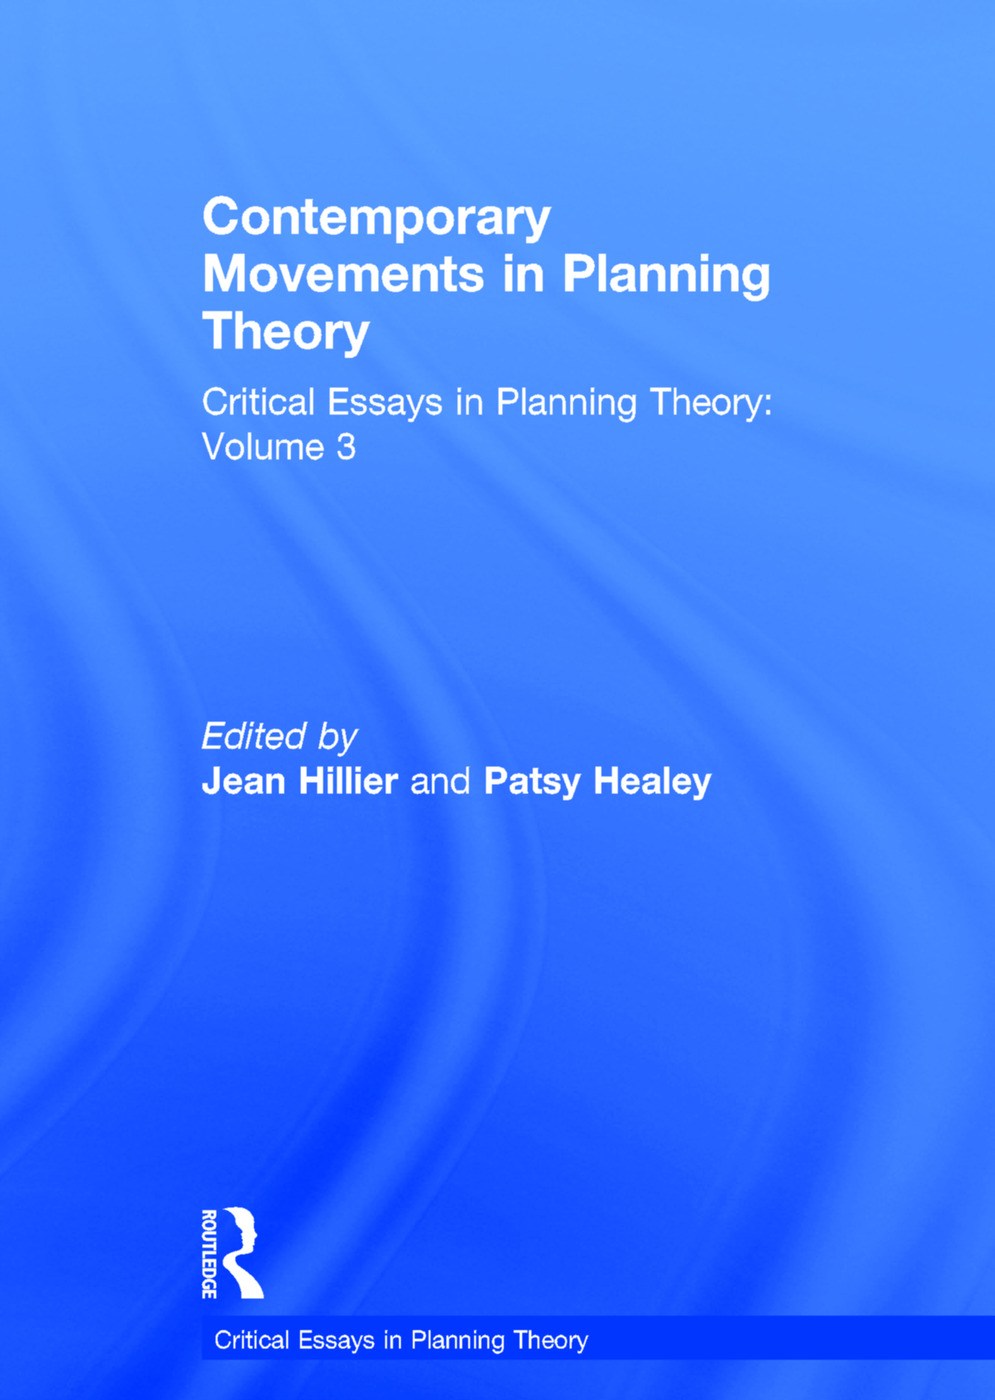 Patsy Healey (1992), 'A Planner's Day: Knowledge and Action in Communicative Practice, Journal of the American Planning Association, 58, pp. 9-20.